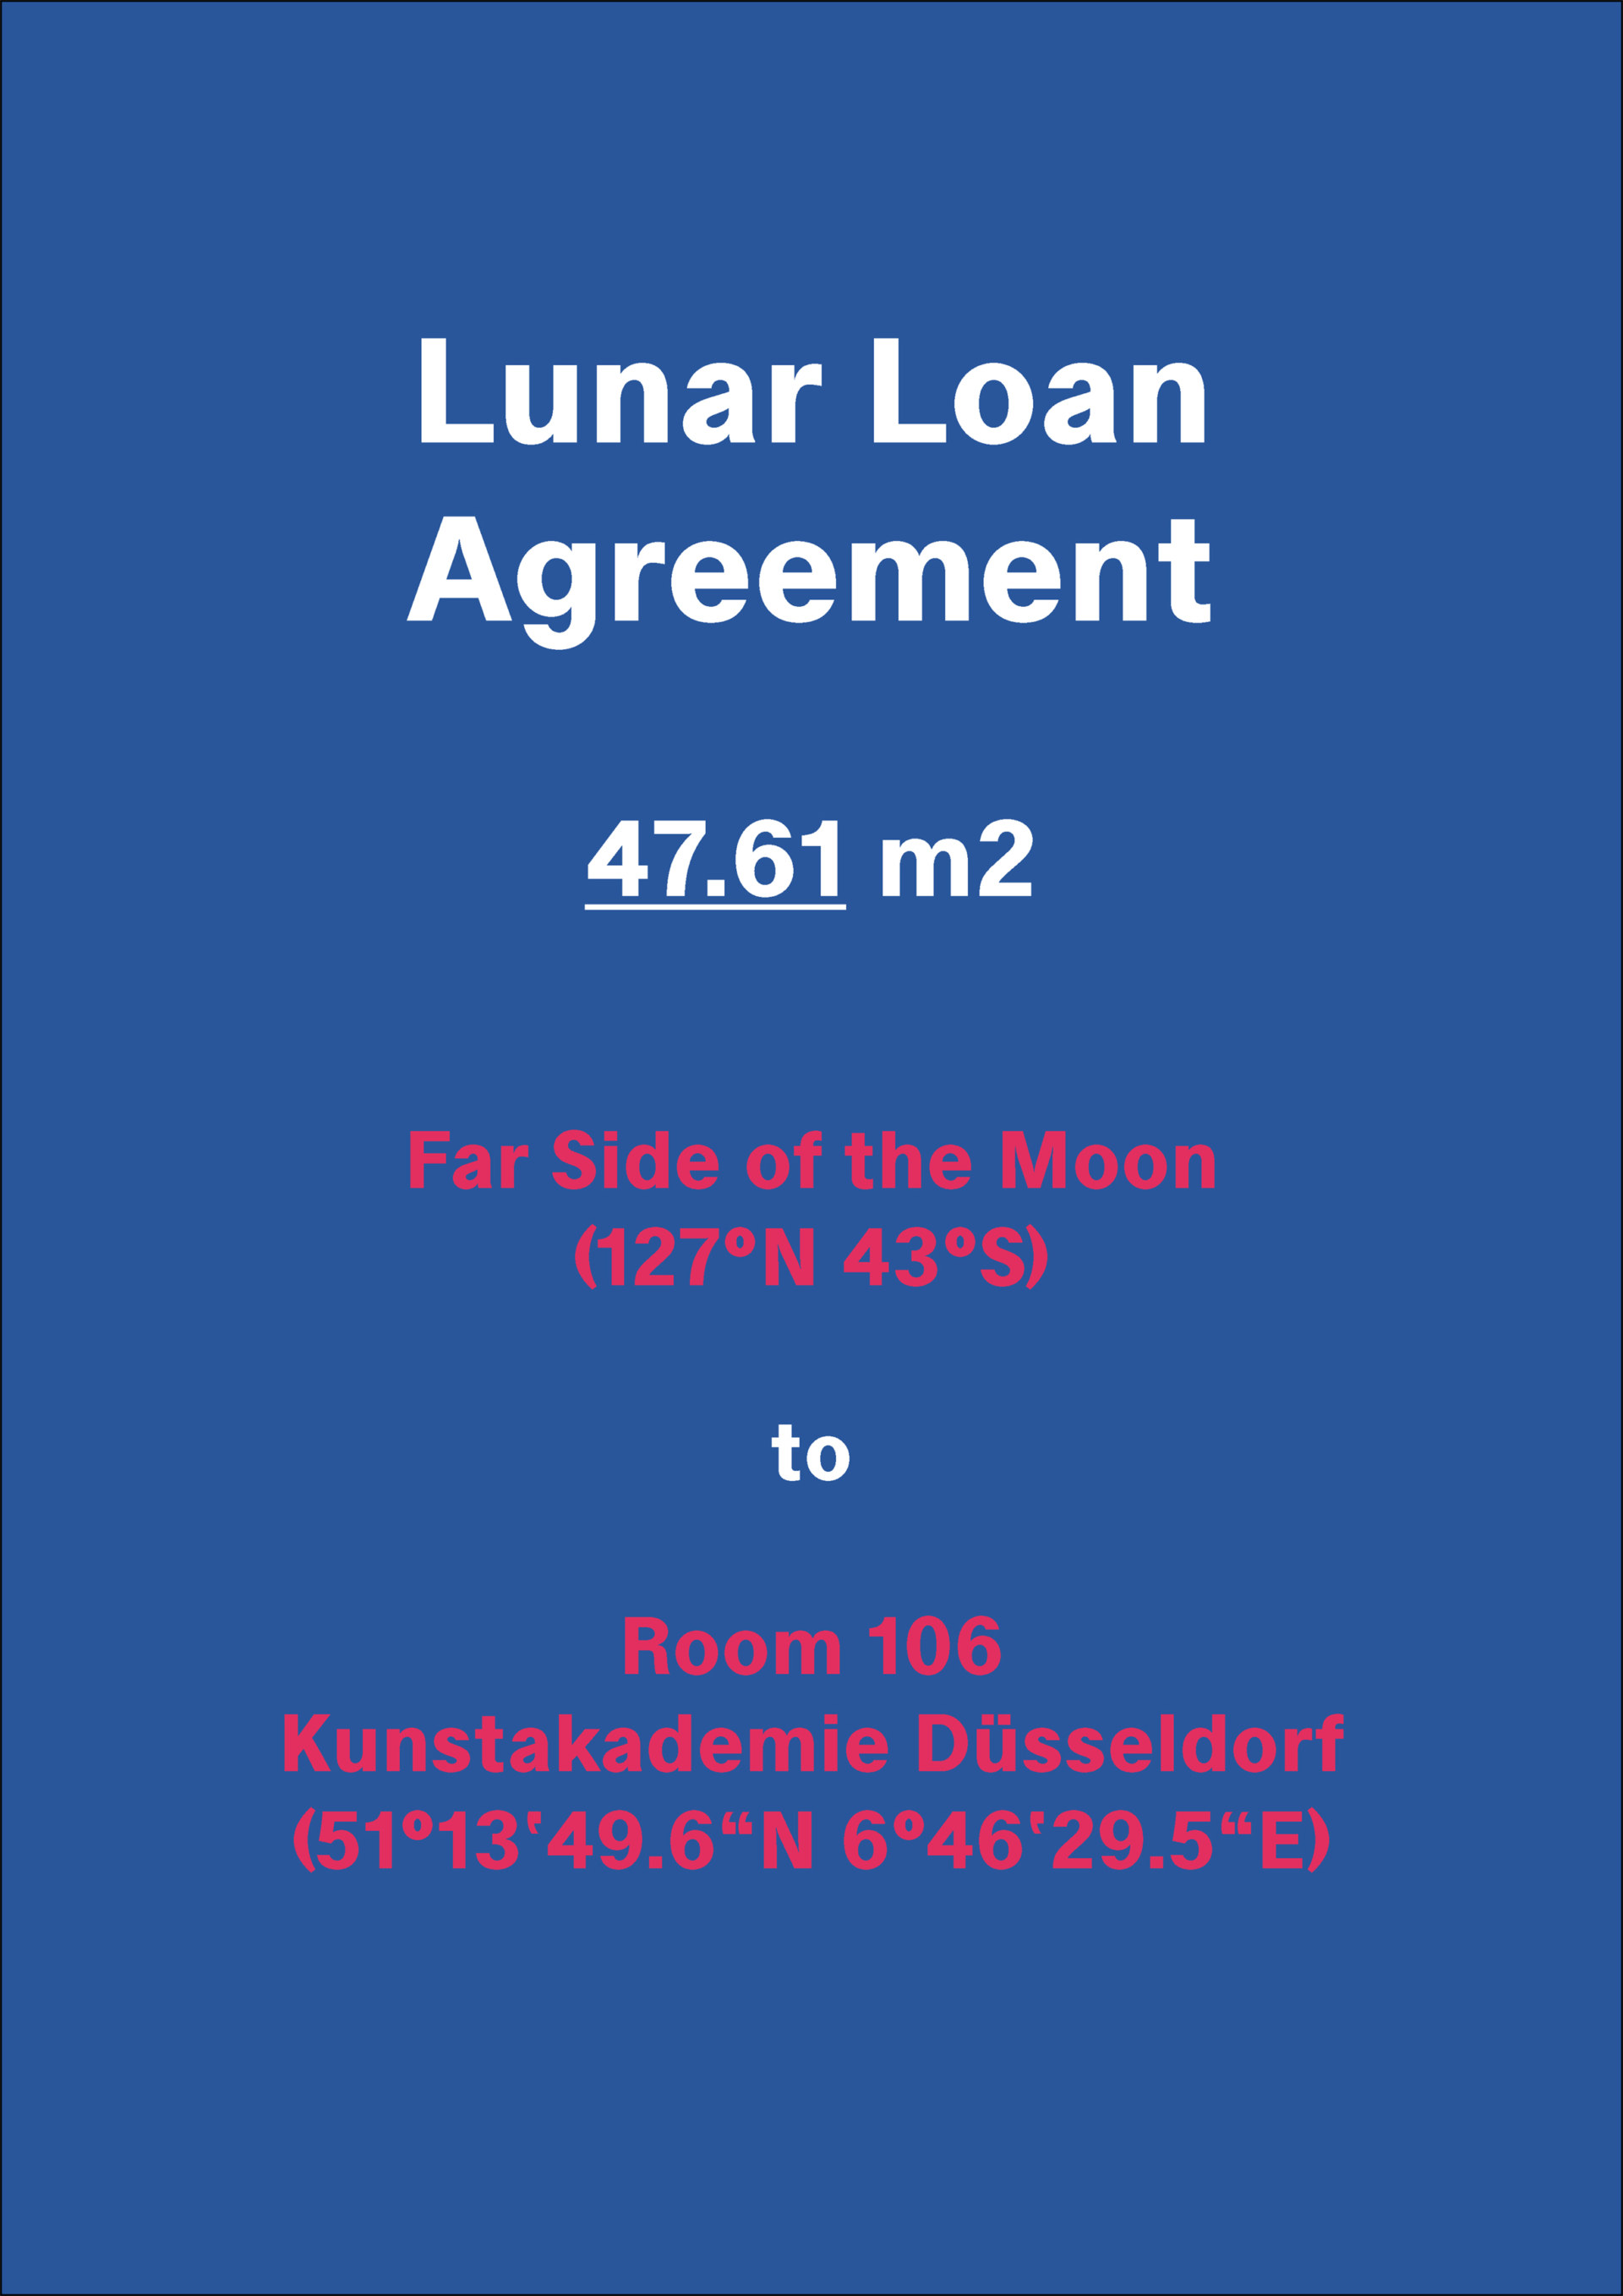 Klasse John Morgan Lunar Loan Agreement